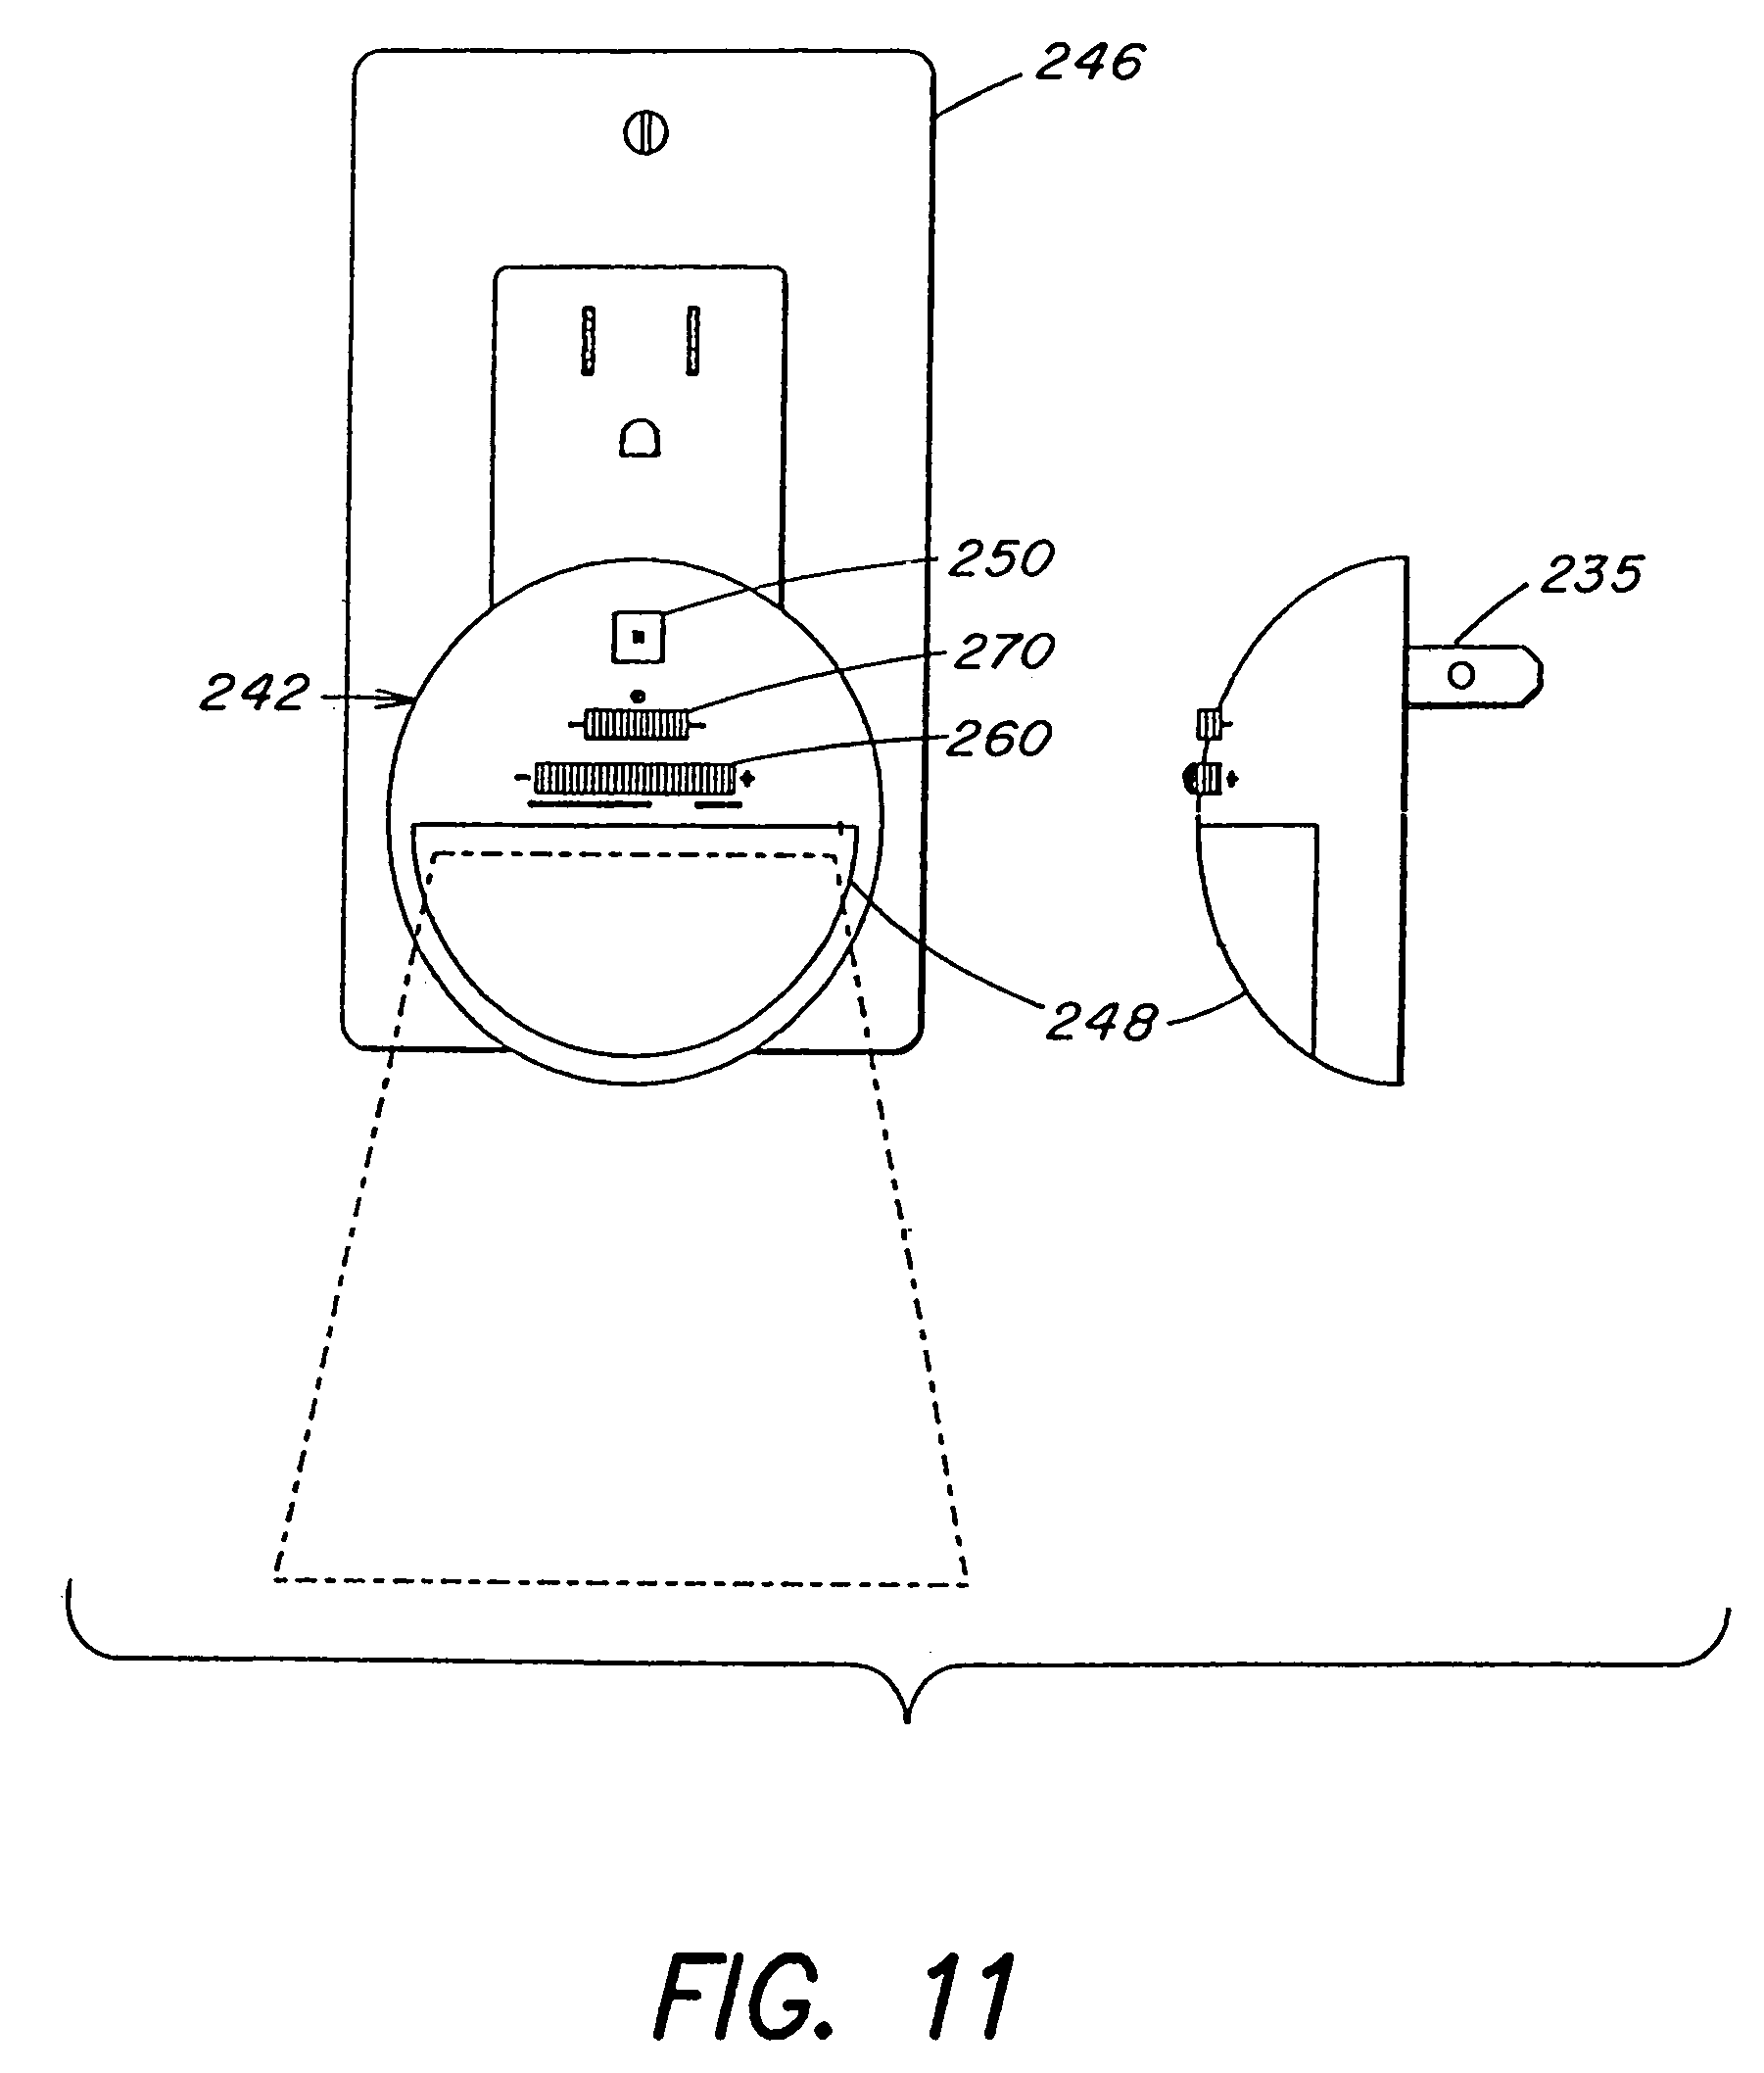 Patent Us 7161313 B2 Schematic For A Complete Led Pumpkin Candle With Numerous Parallel